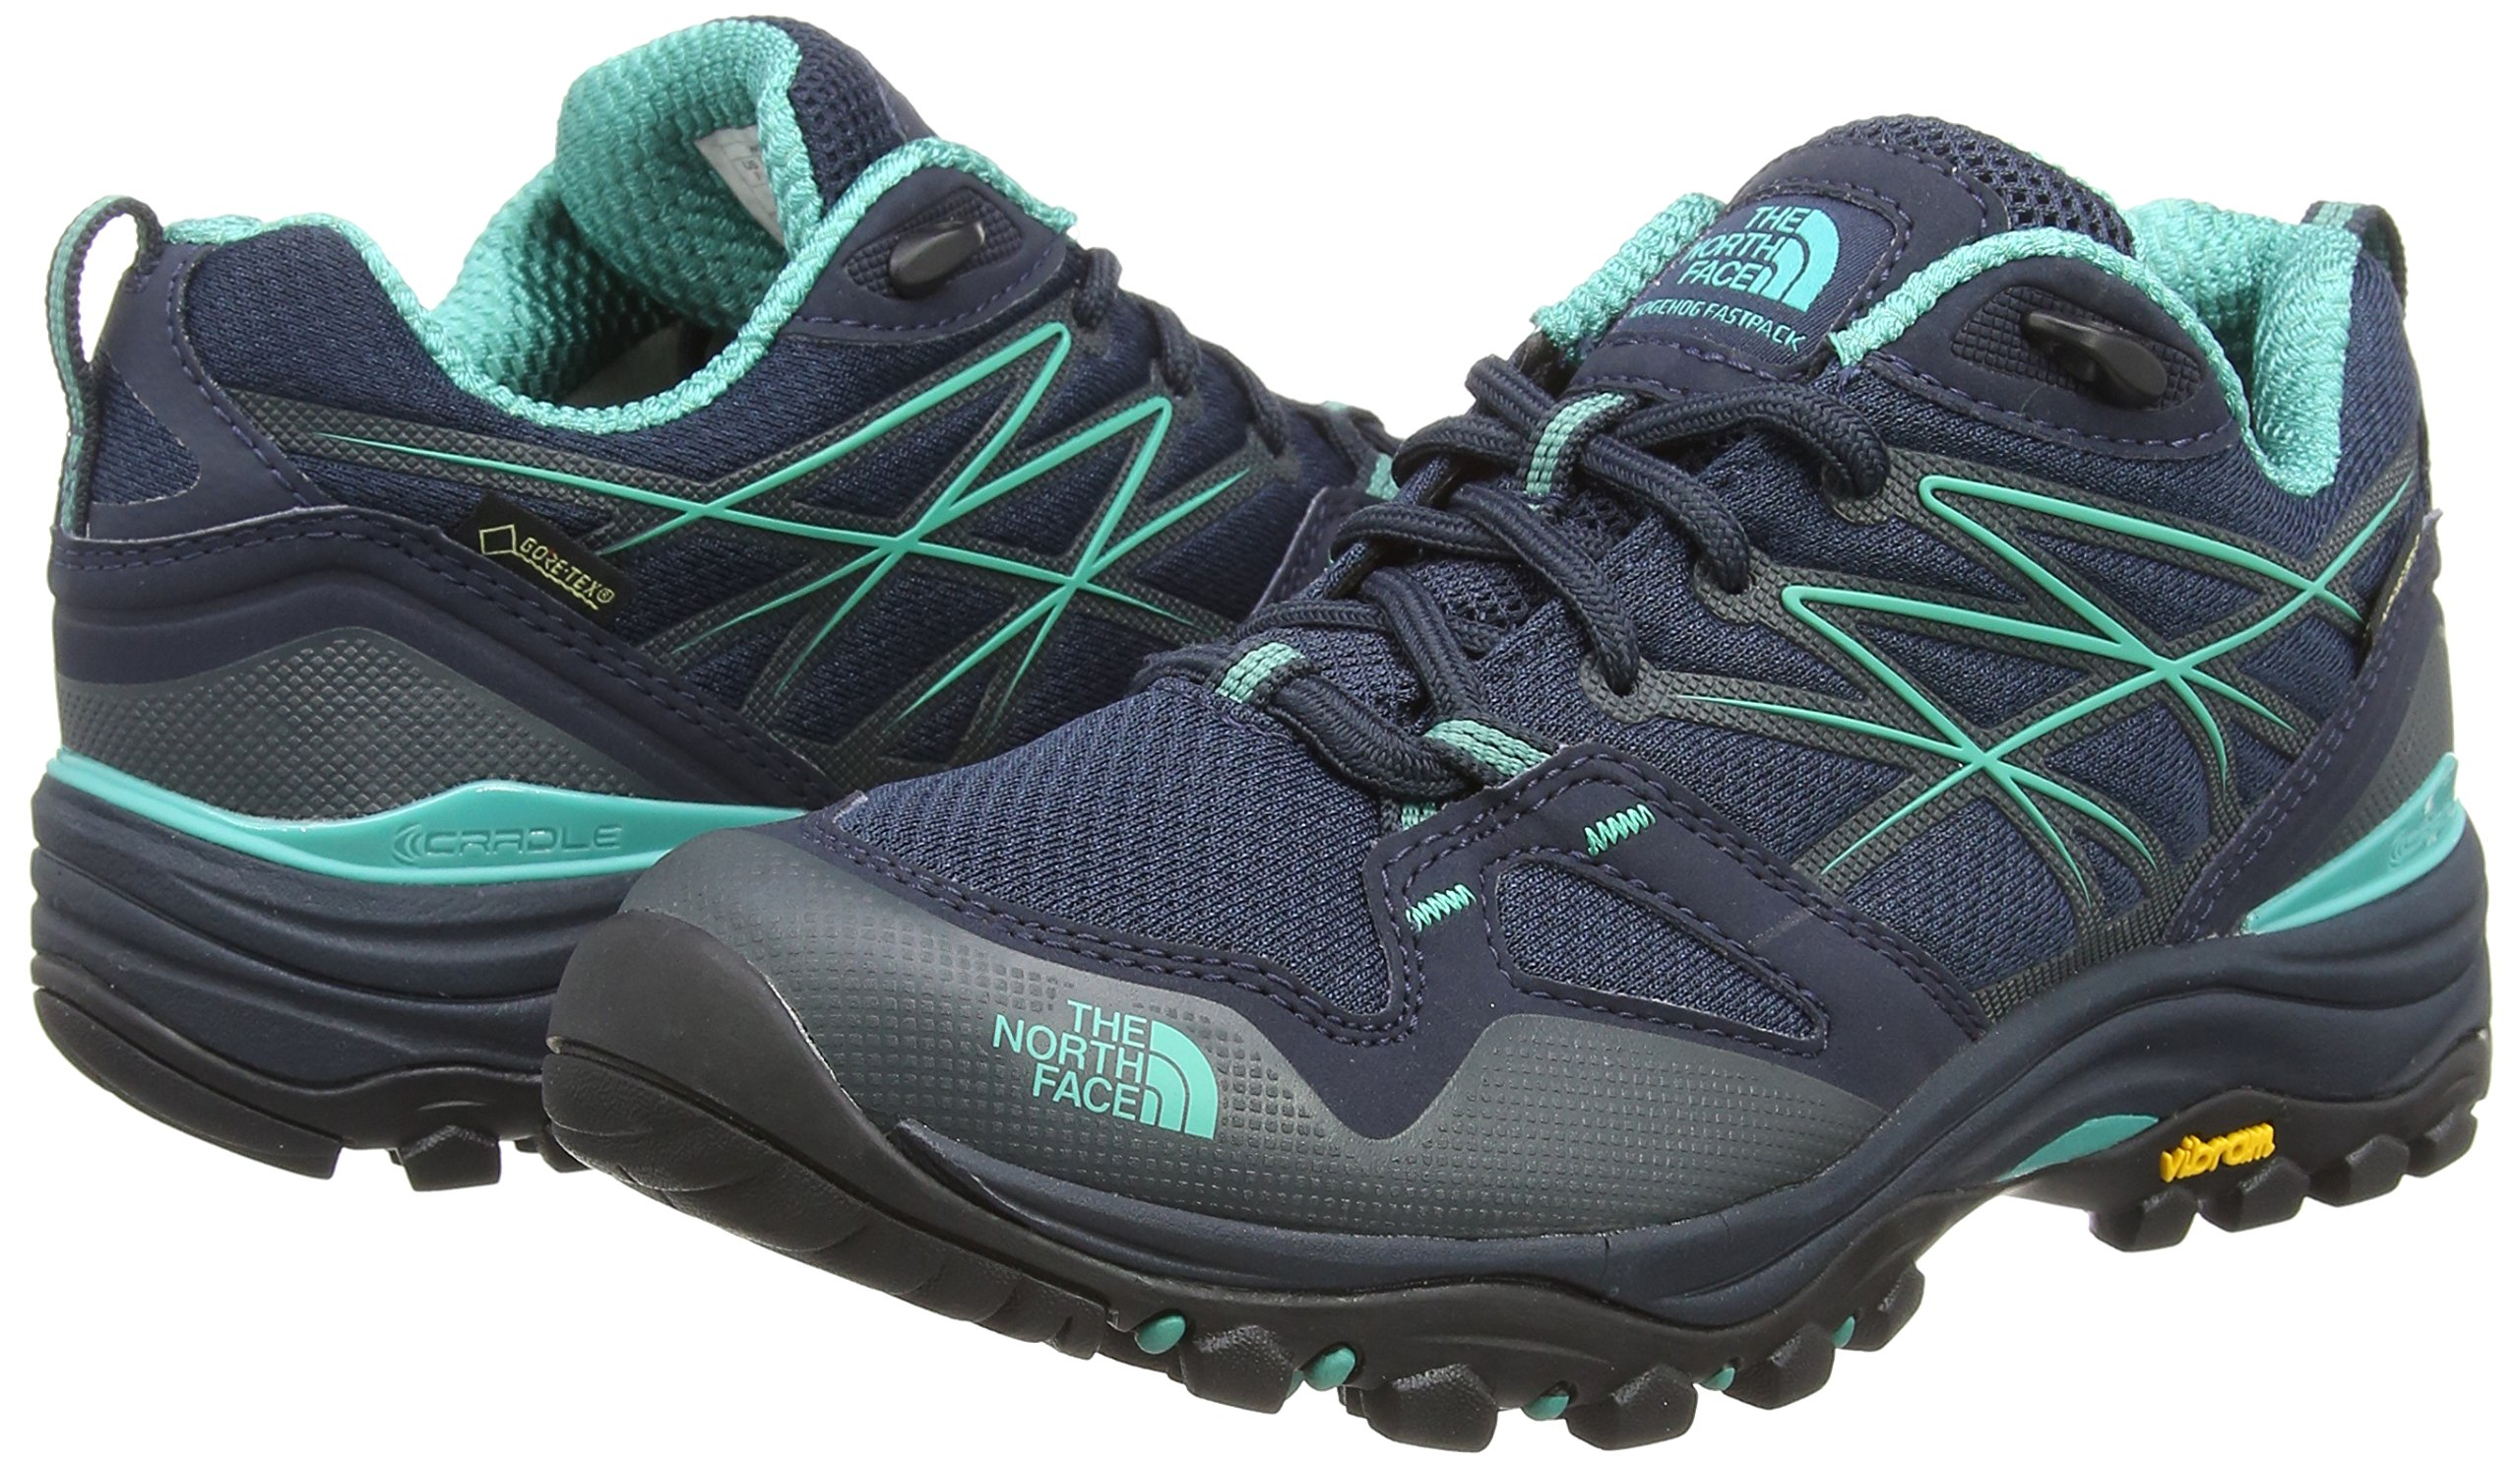 91wNvBvytBL - THE NORTH FACE Women's Hedgehog Fastpack Gore-tex (EU) Low Rise Hiking Boots